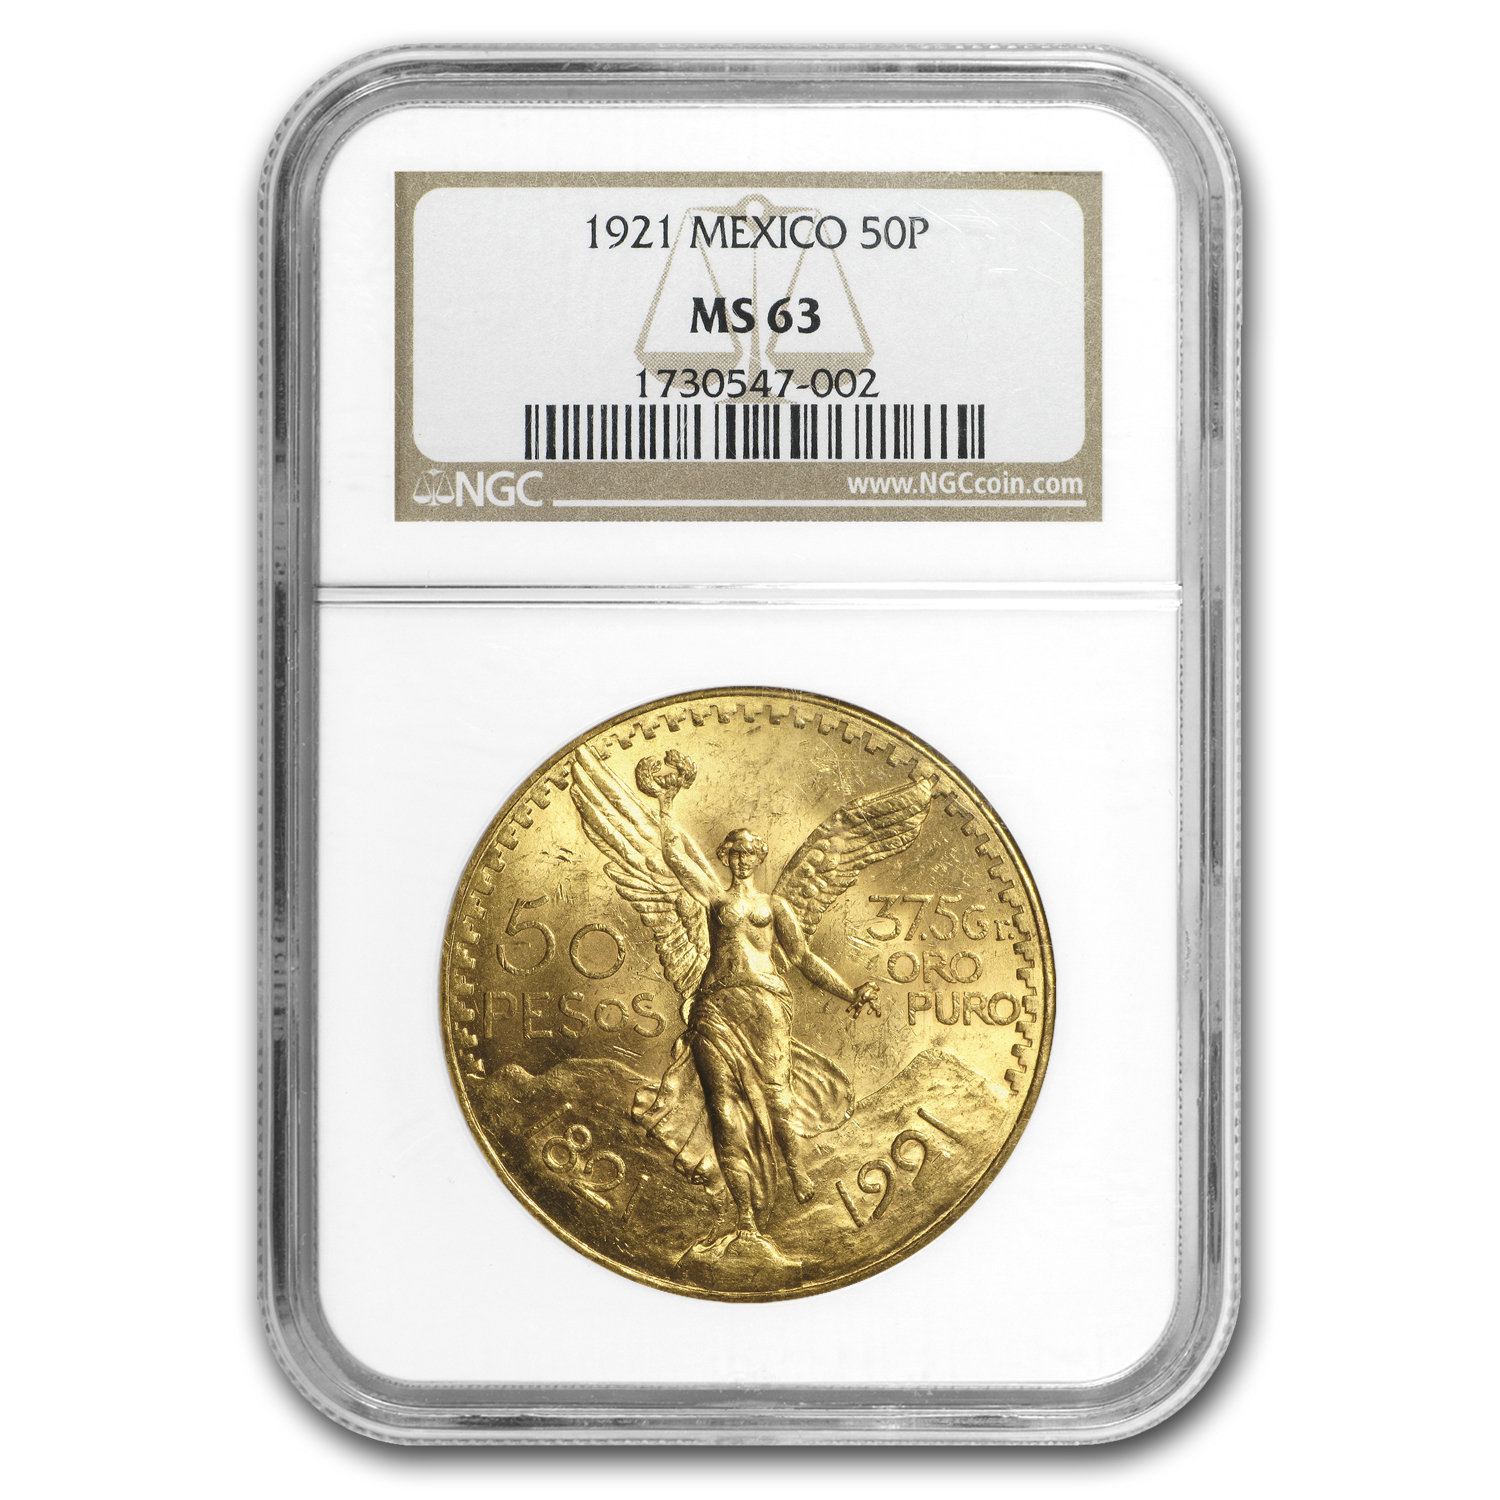 Mexico 1921 50 Pesos Gold MS-63 NGC